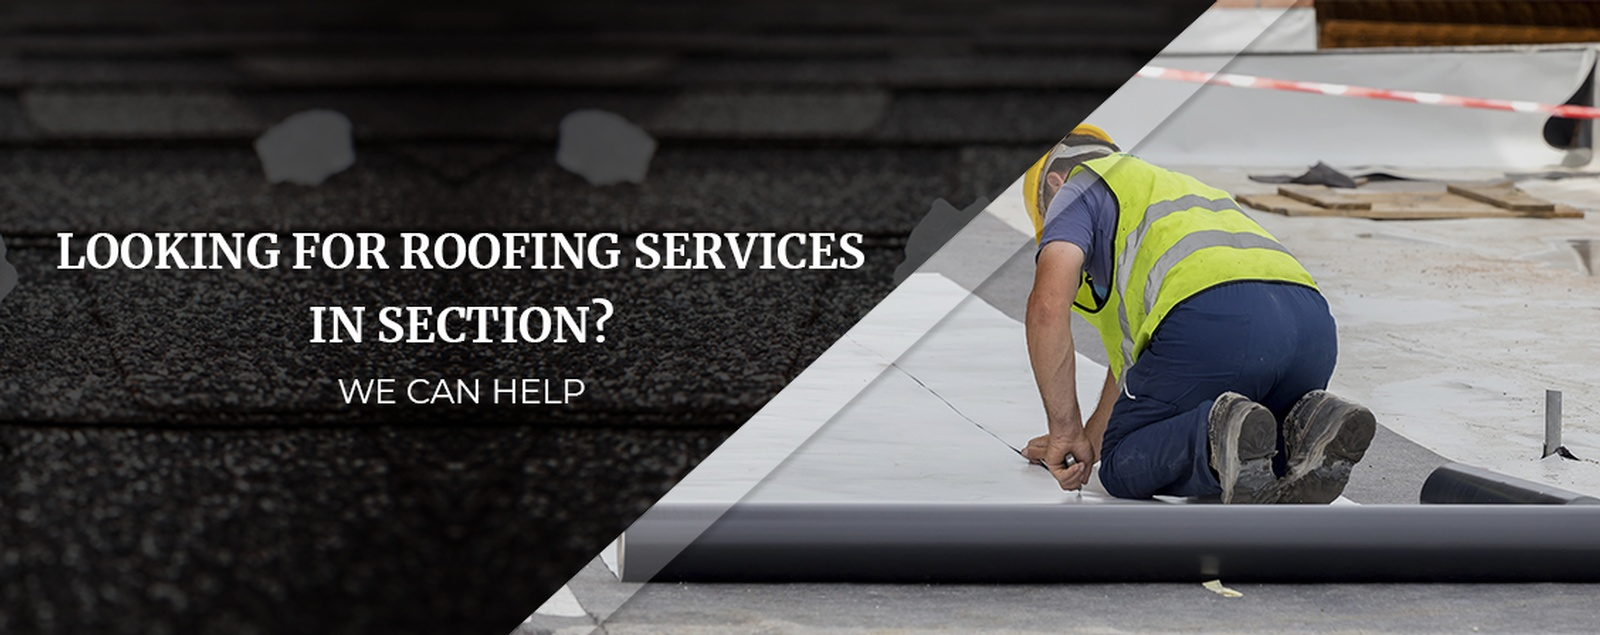 Looking For Roofing Services In Section We Can Help